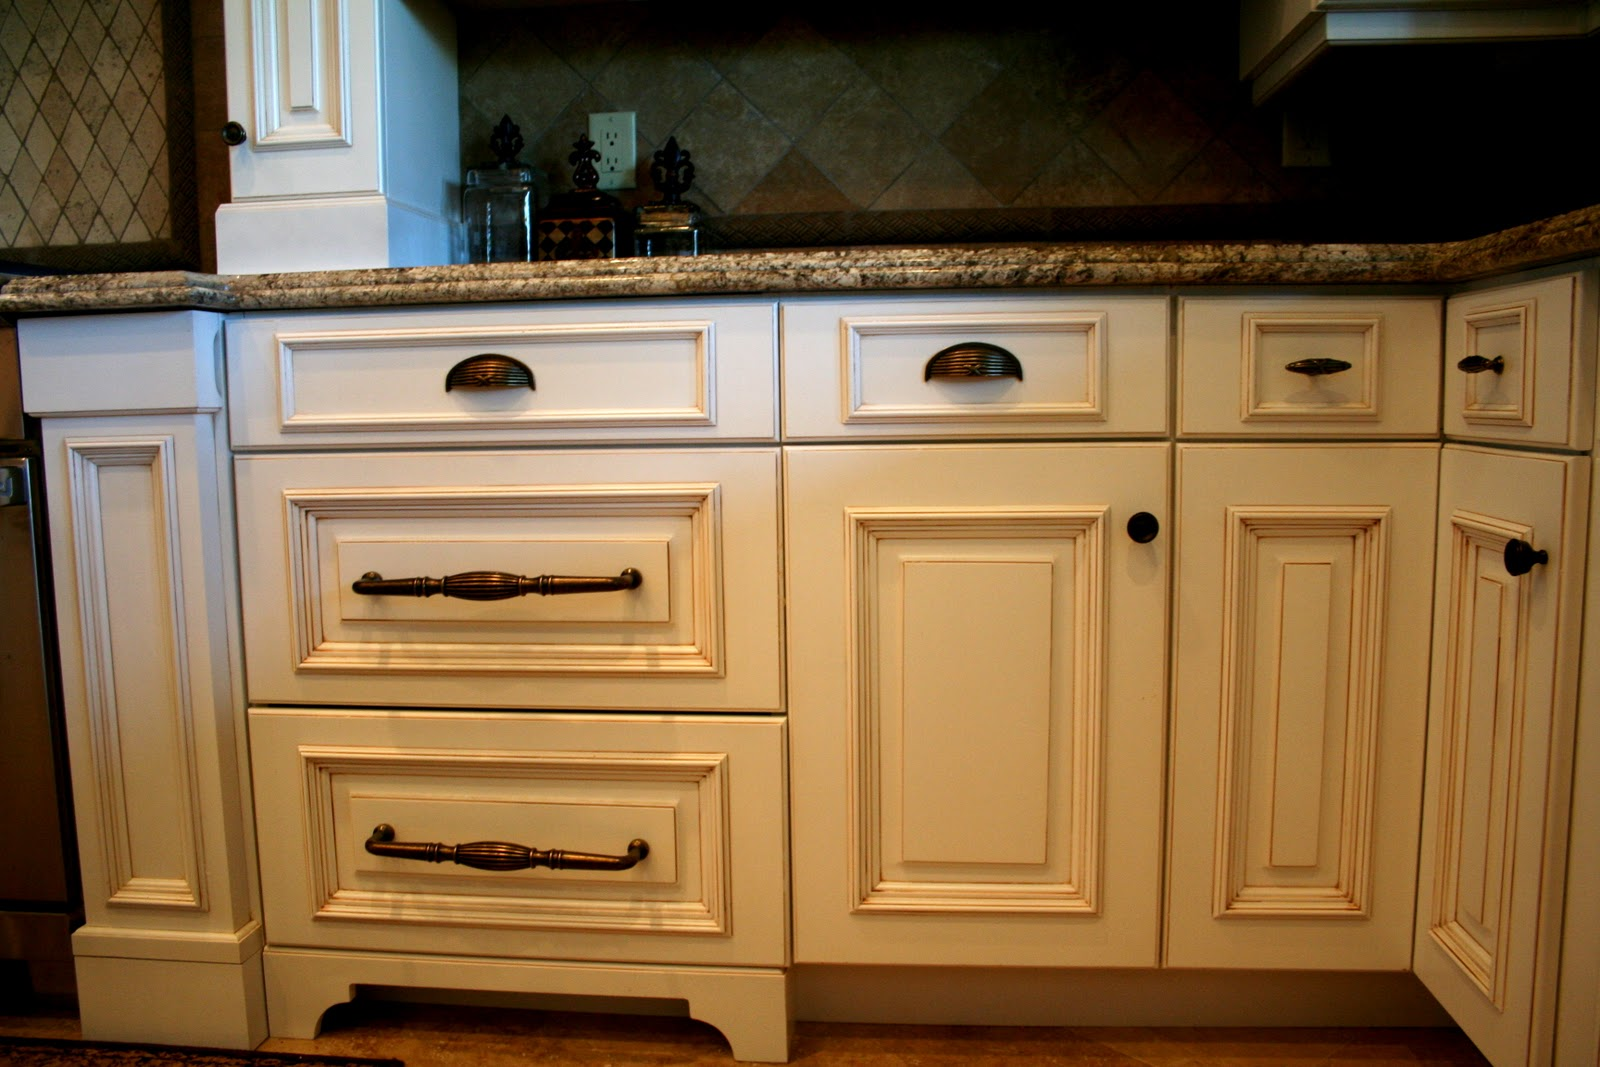 Kitchen Cabinet Hardware Pulls Oak Chairs Design Dump Mixing In The